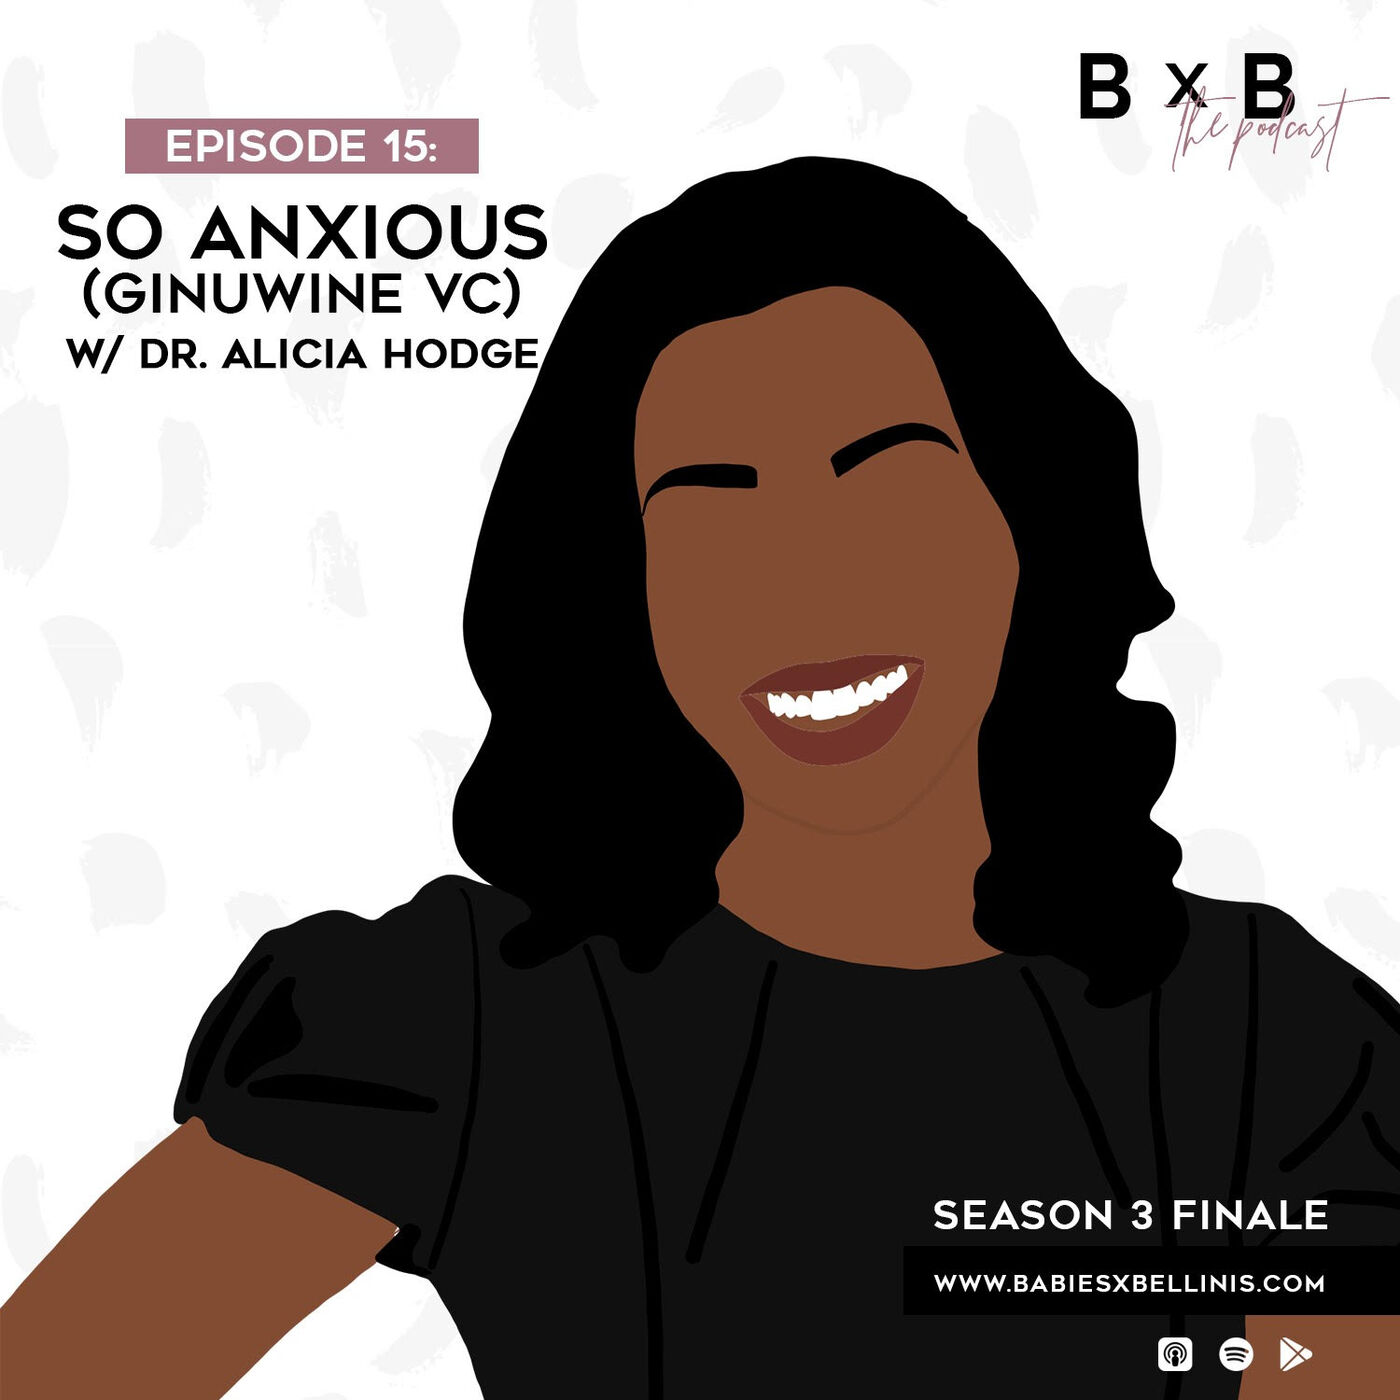 So Anxious featuring Dr. Alicia Hodge